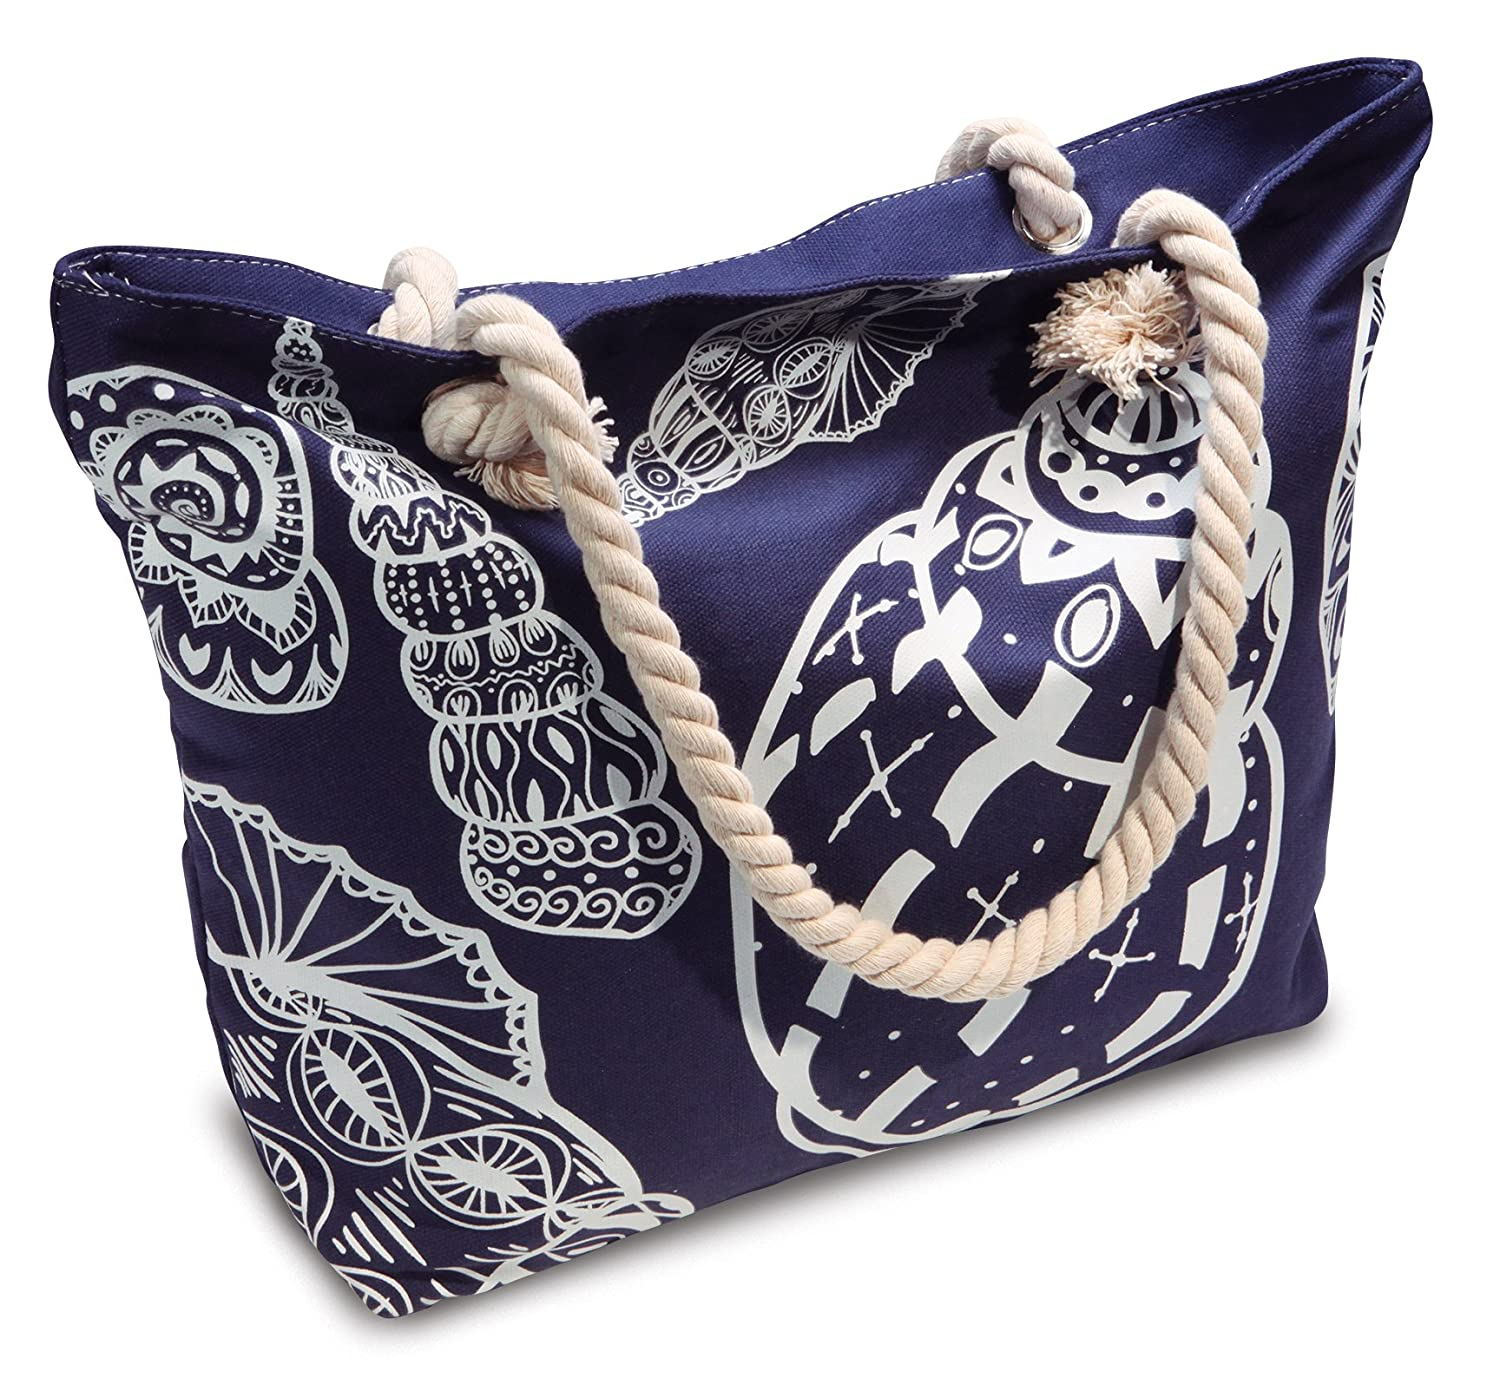 Amazon.com: Beach Bag With Inner Zipper Pocket from Moskus Gear ...